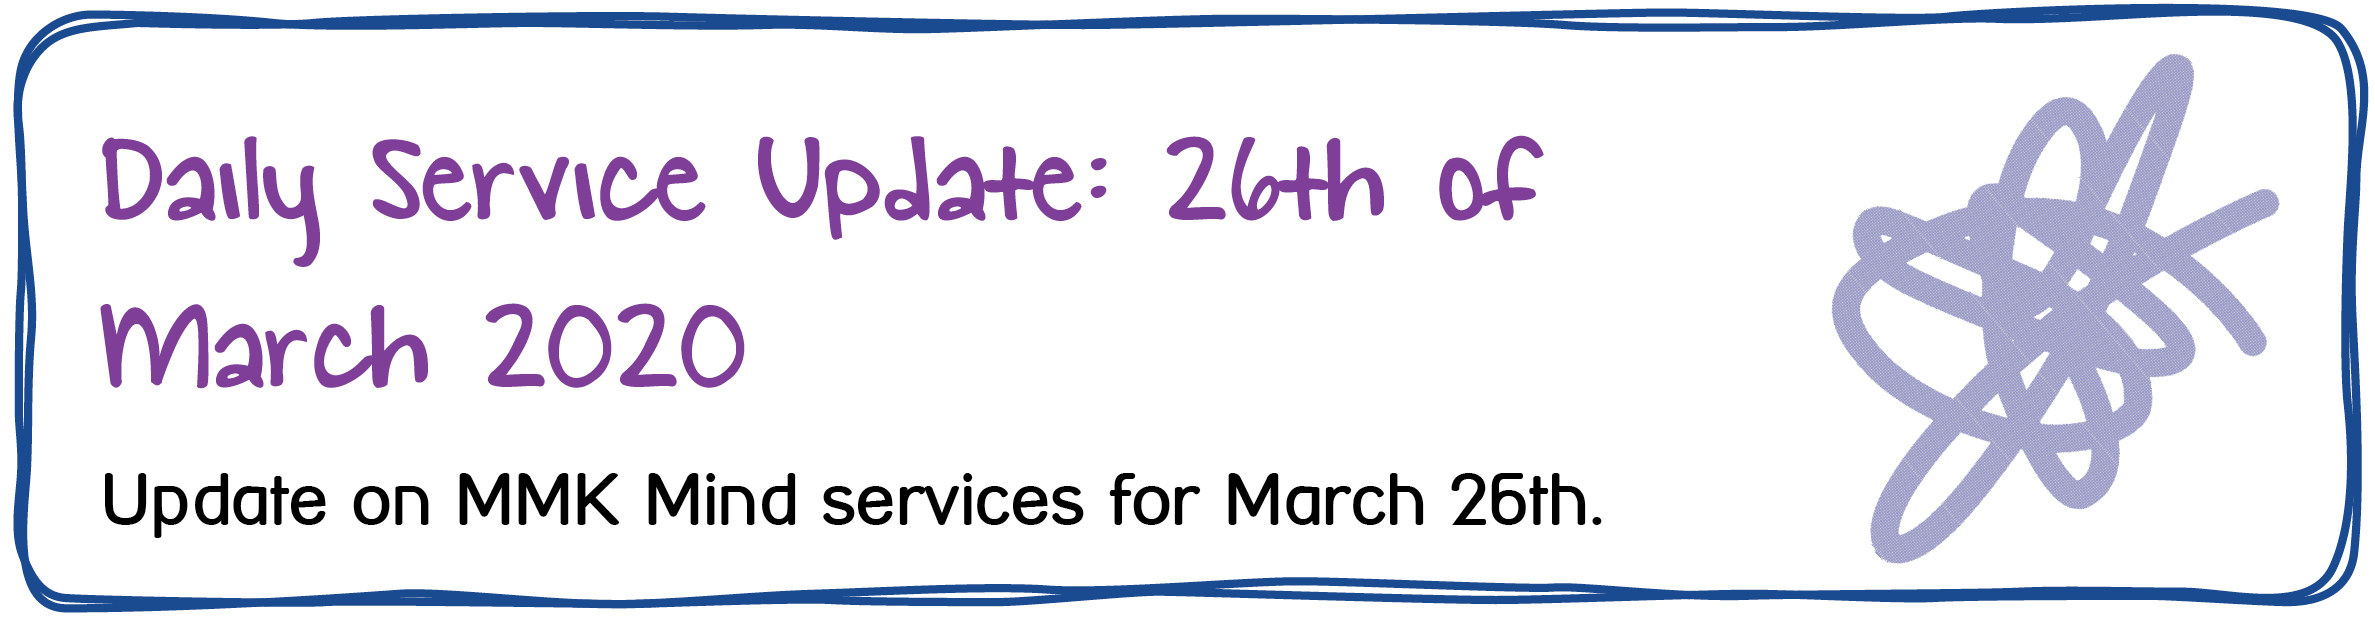 Daily Service Update: 26th of March 2020. Update on MMK Mind services for March 26th.